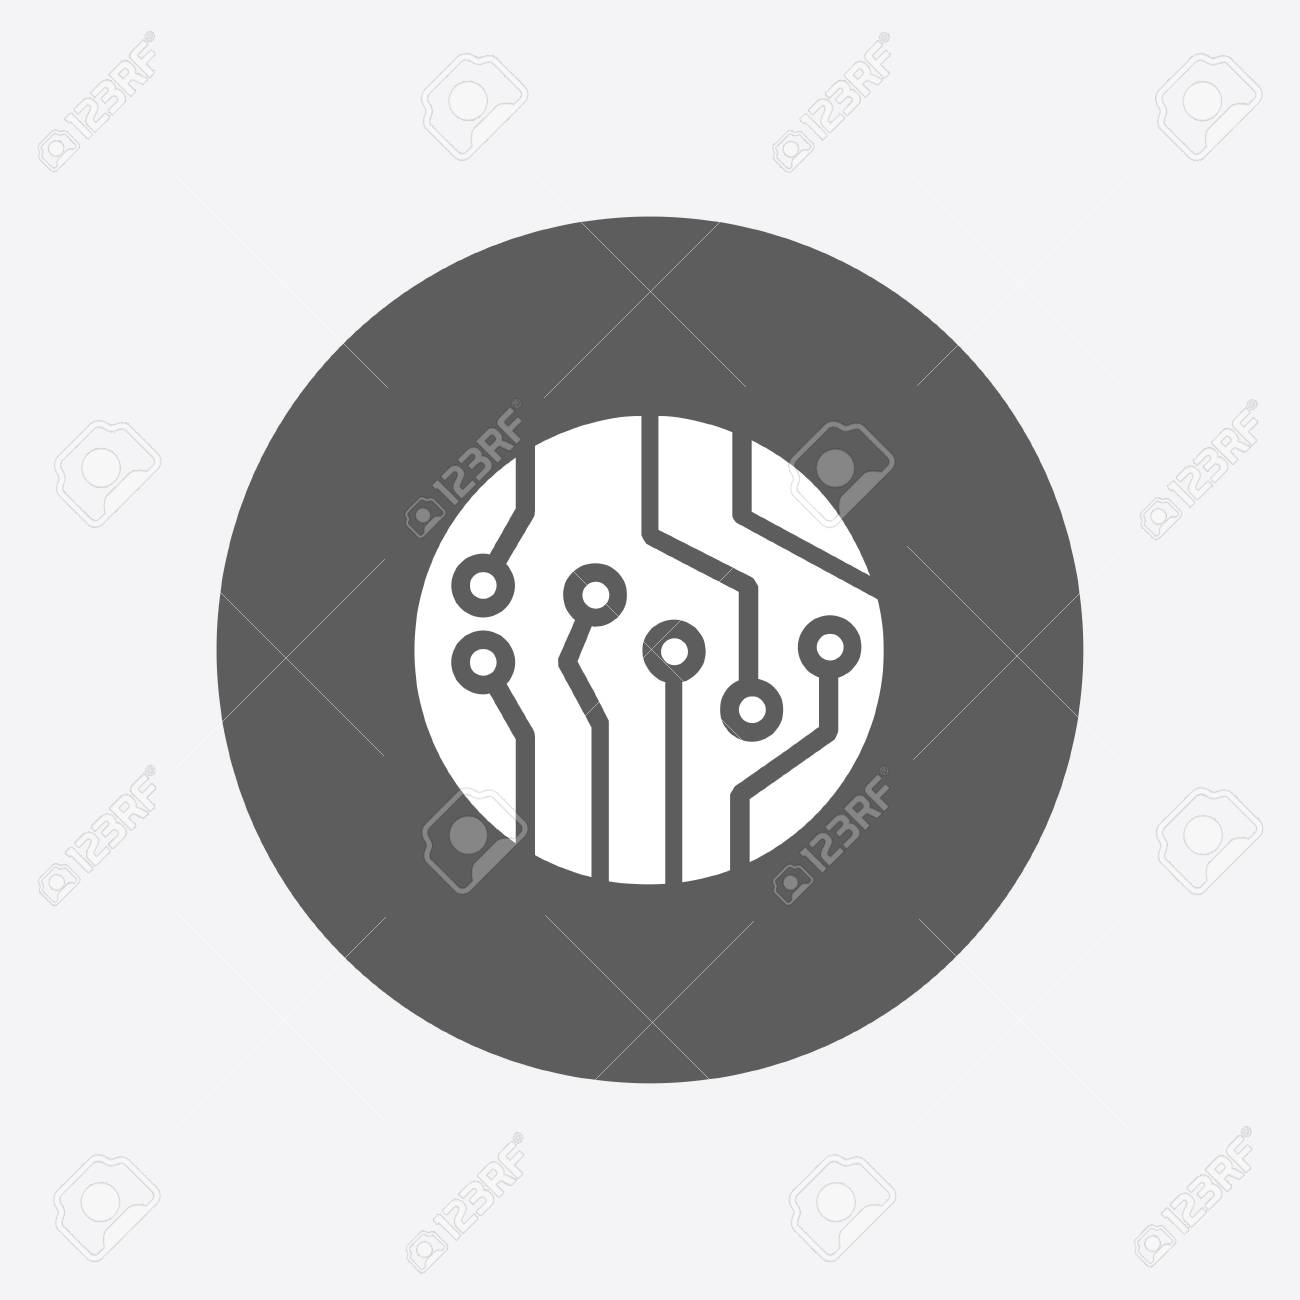 Wallpaper Buzzer Symbol Physics Simple Schematic For Wiring Diagram Affordable Enchanting In A Circuit Images Ideas With